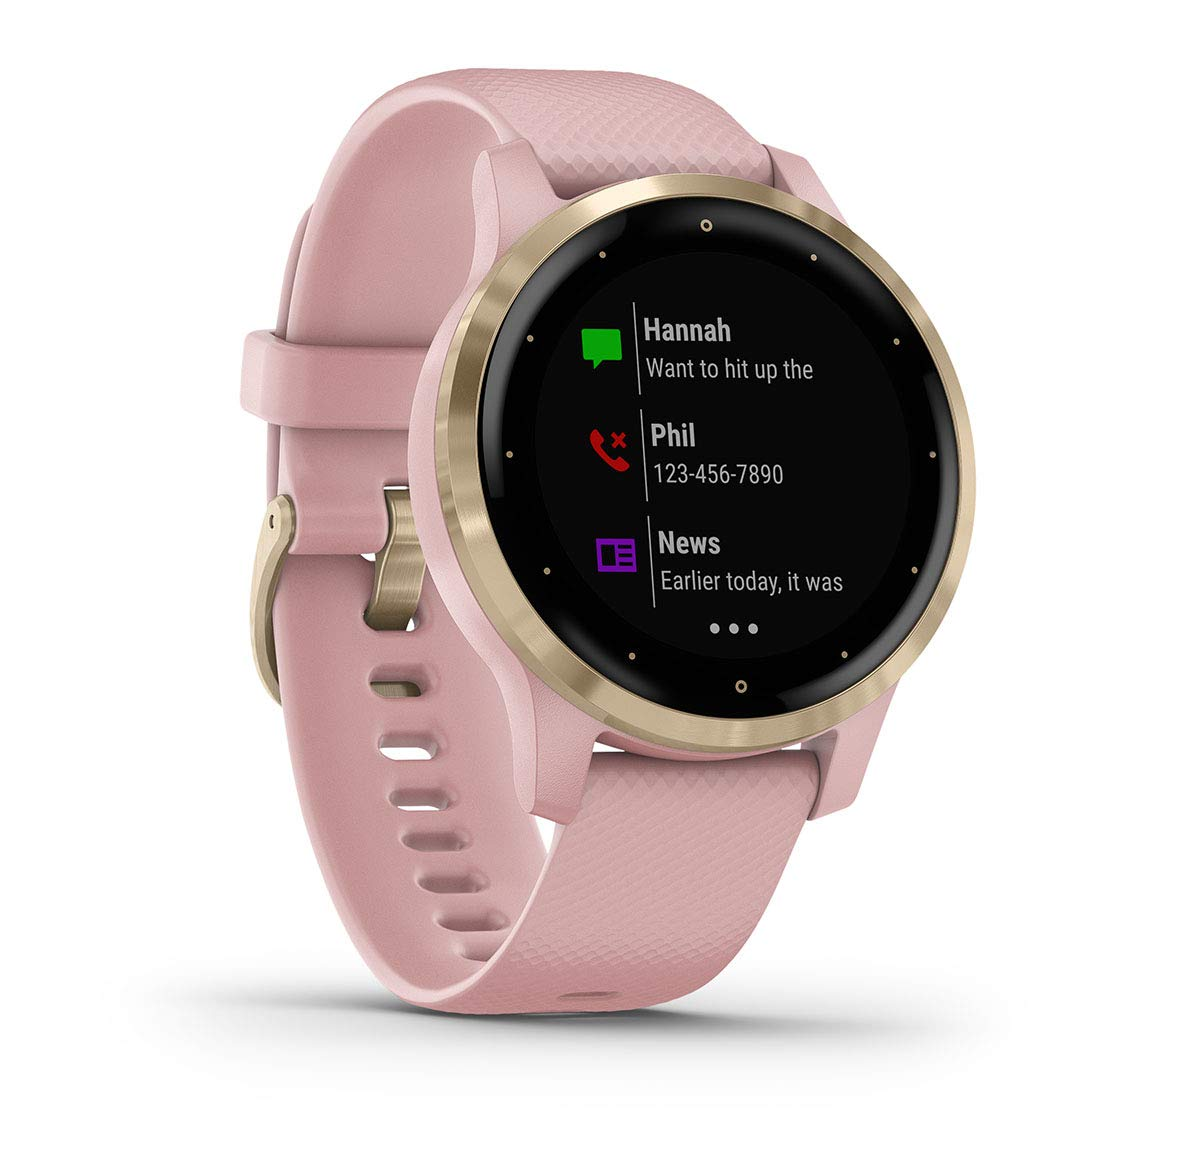 PlayBetter Garmin vivoactive 4S (Light Gold/Dust Rose) Fitness Smartwatch Power Bundle | 2019 Model | with HD Screen Protectors (x4) Portable Charger ...